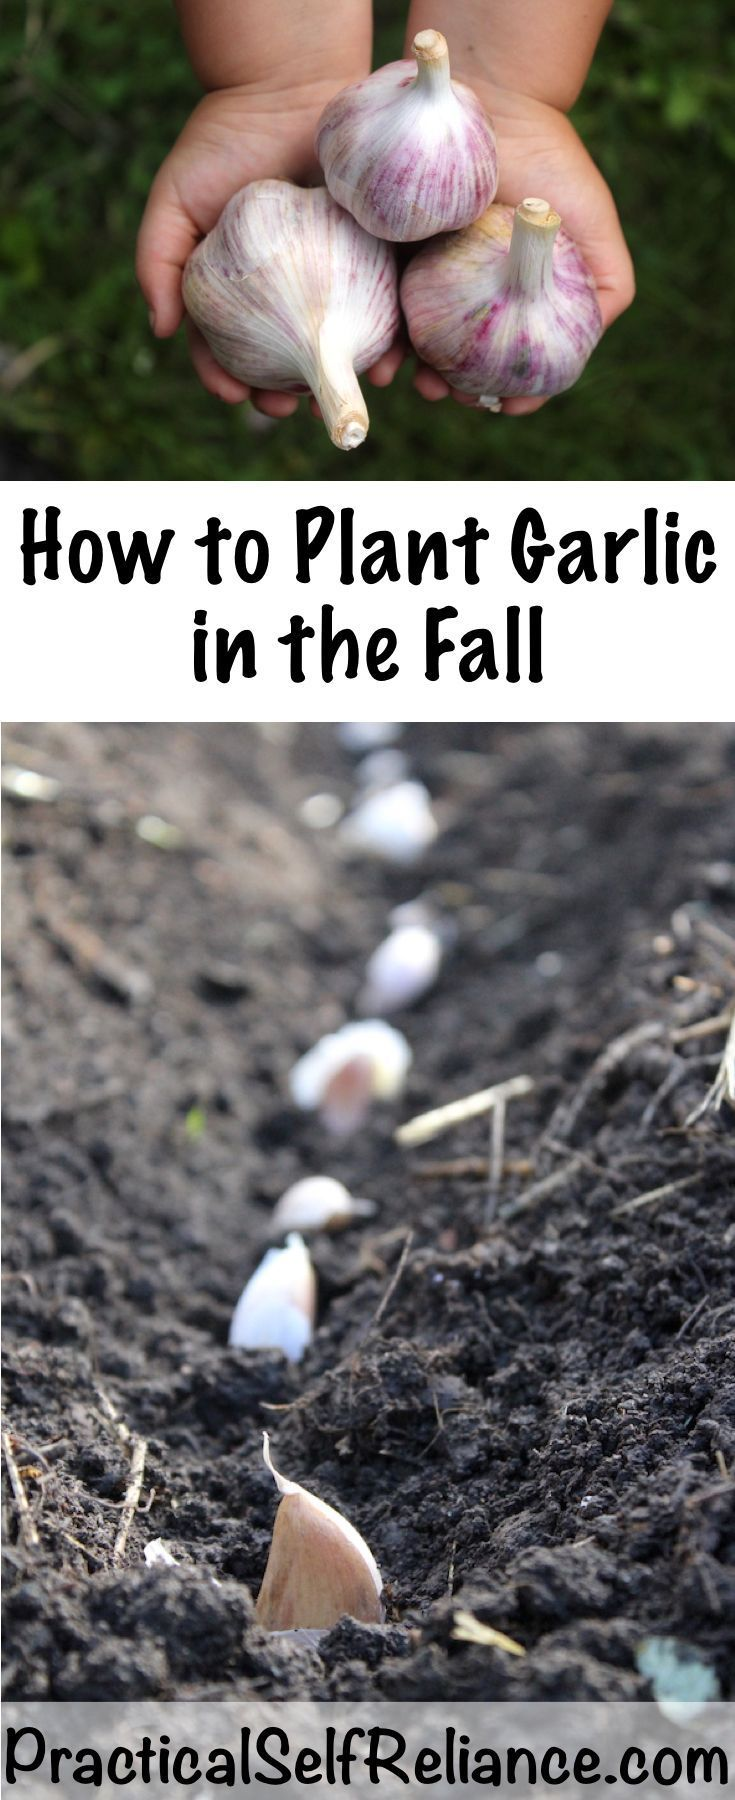 #Fall #Garlic #plant How to Plant Garlic in the Fall ...